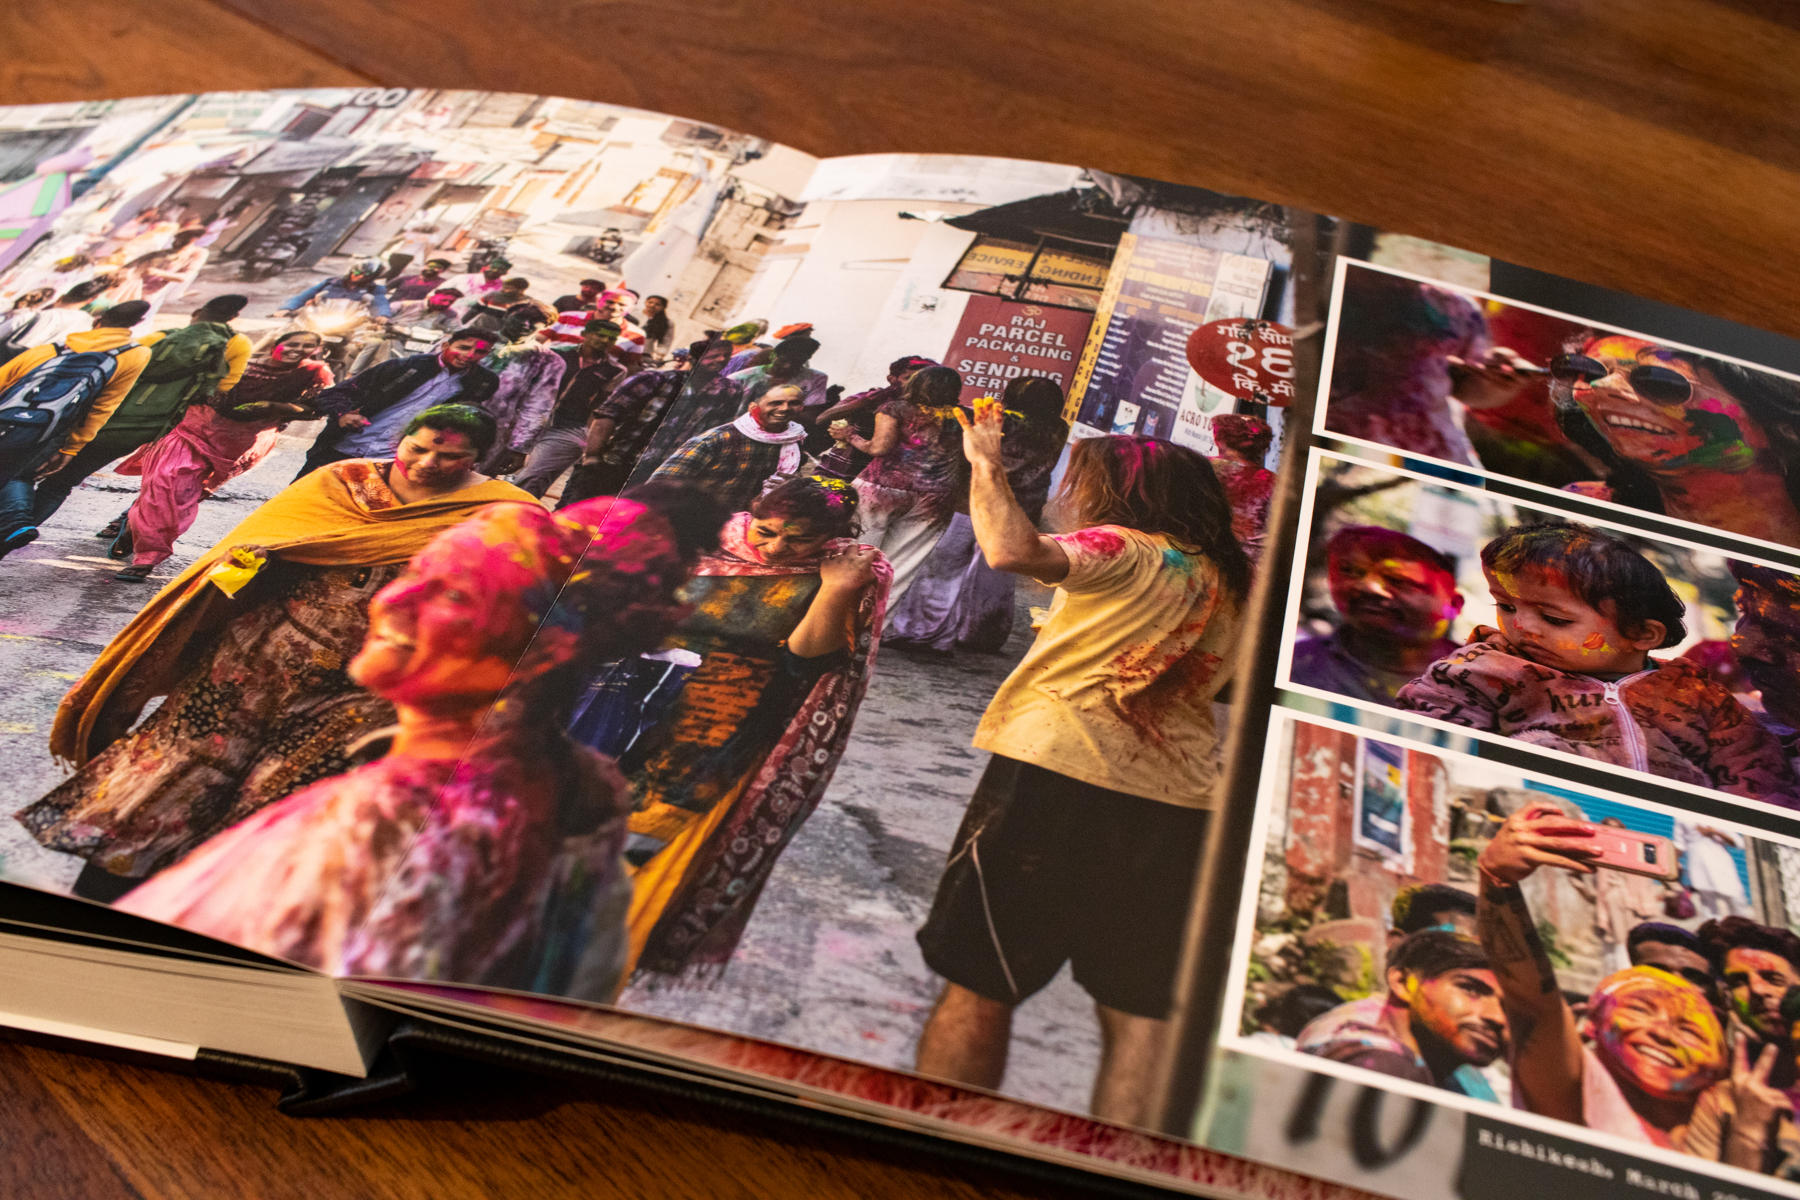 The colors on the photo paper really pop - especiallly in the photos from the colorful Holi Festival in India.